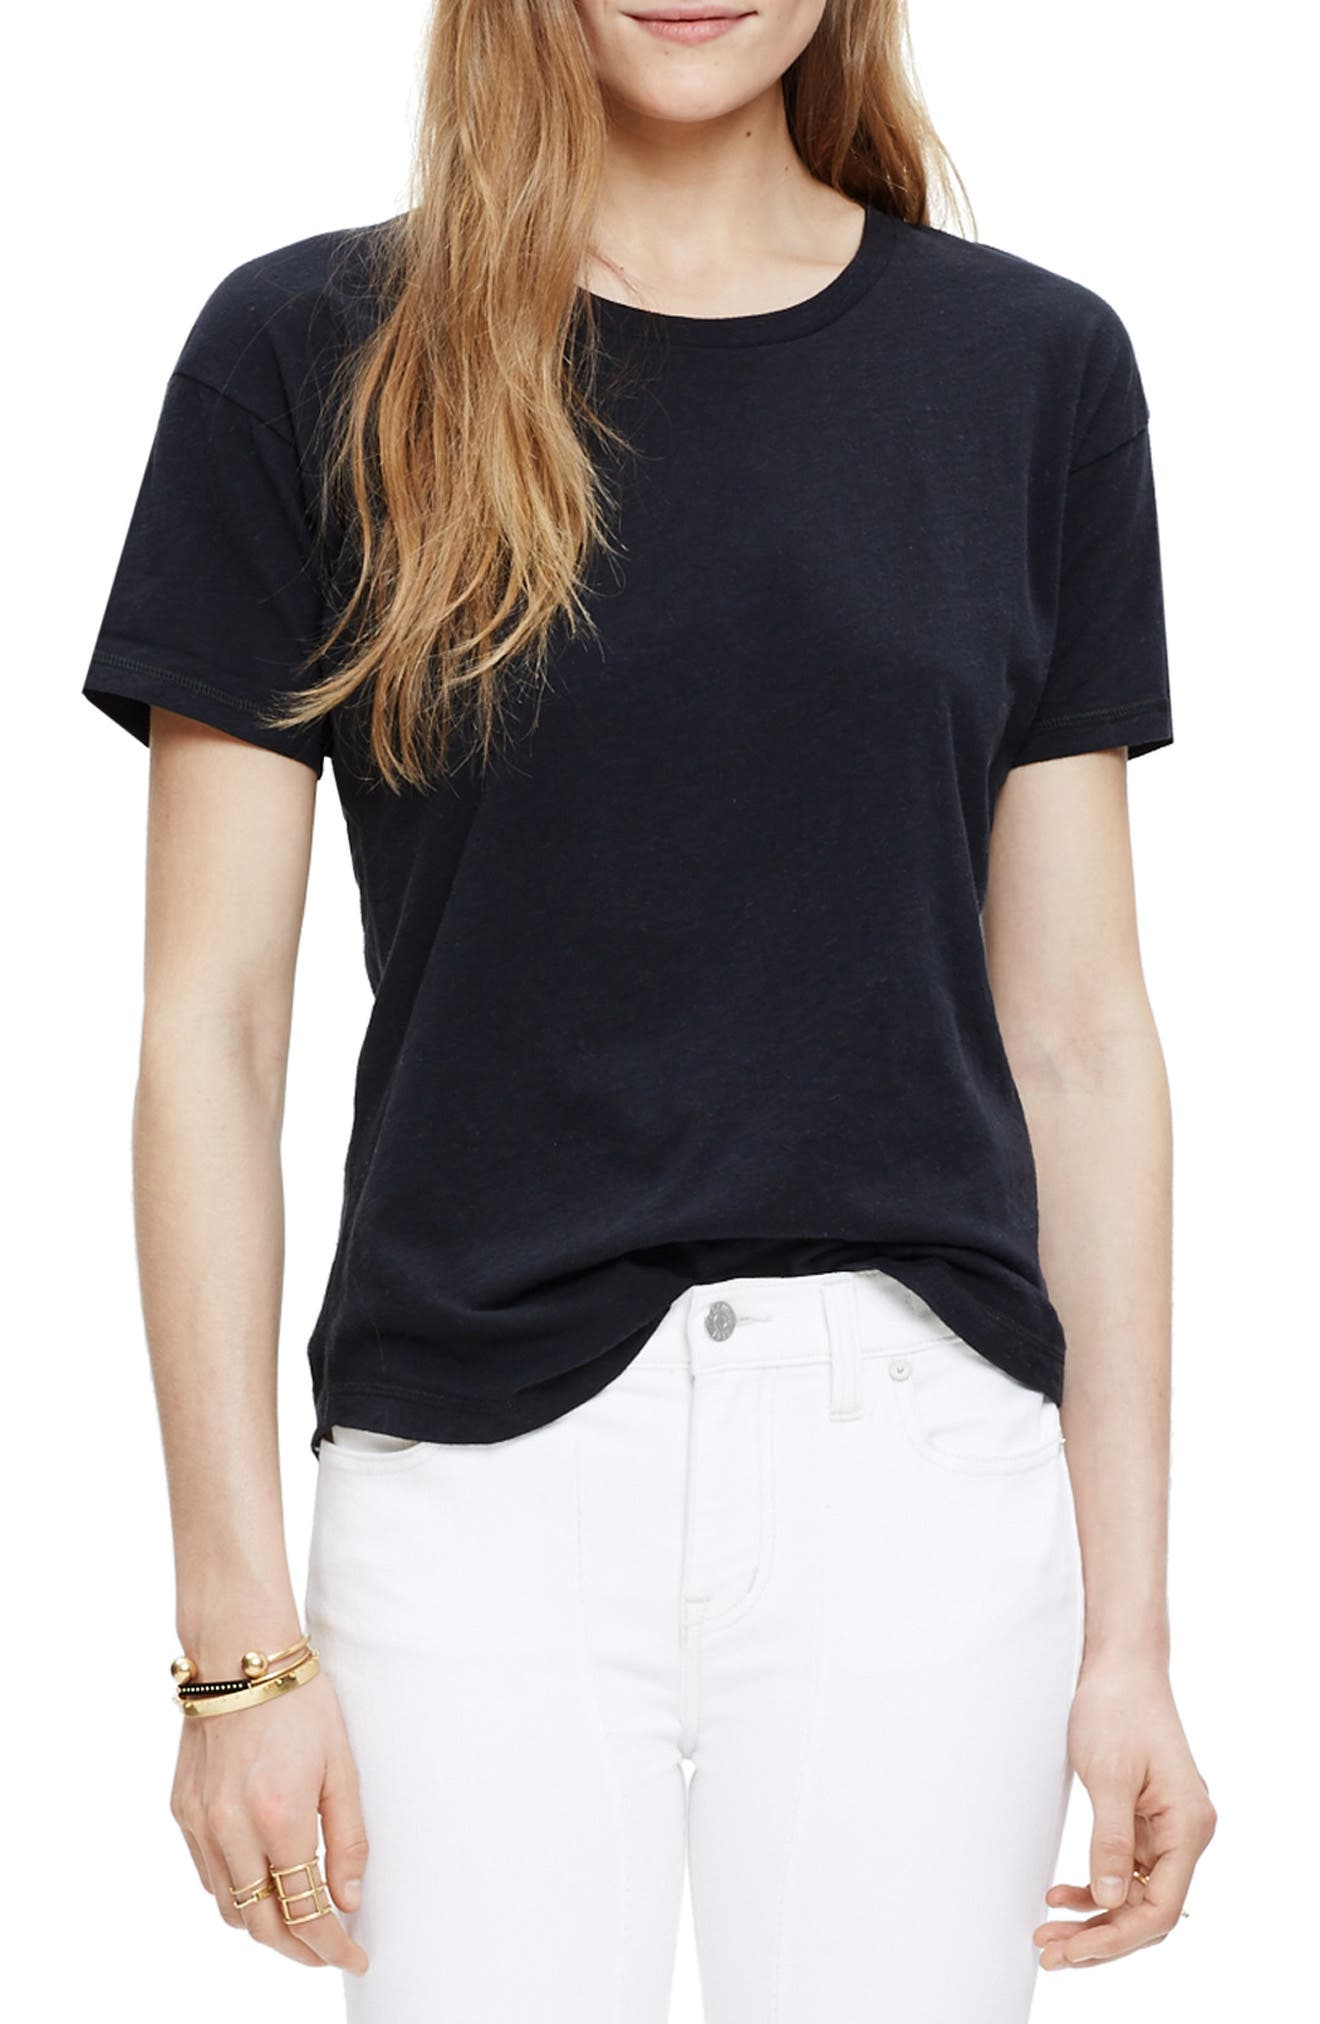 MADEWELL, 'Whisper' Cotton Crewneck Tee, Main thumbnail 1, color, TRUE BLACK